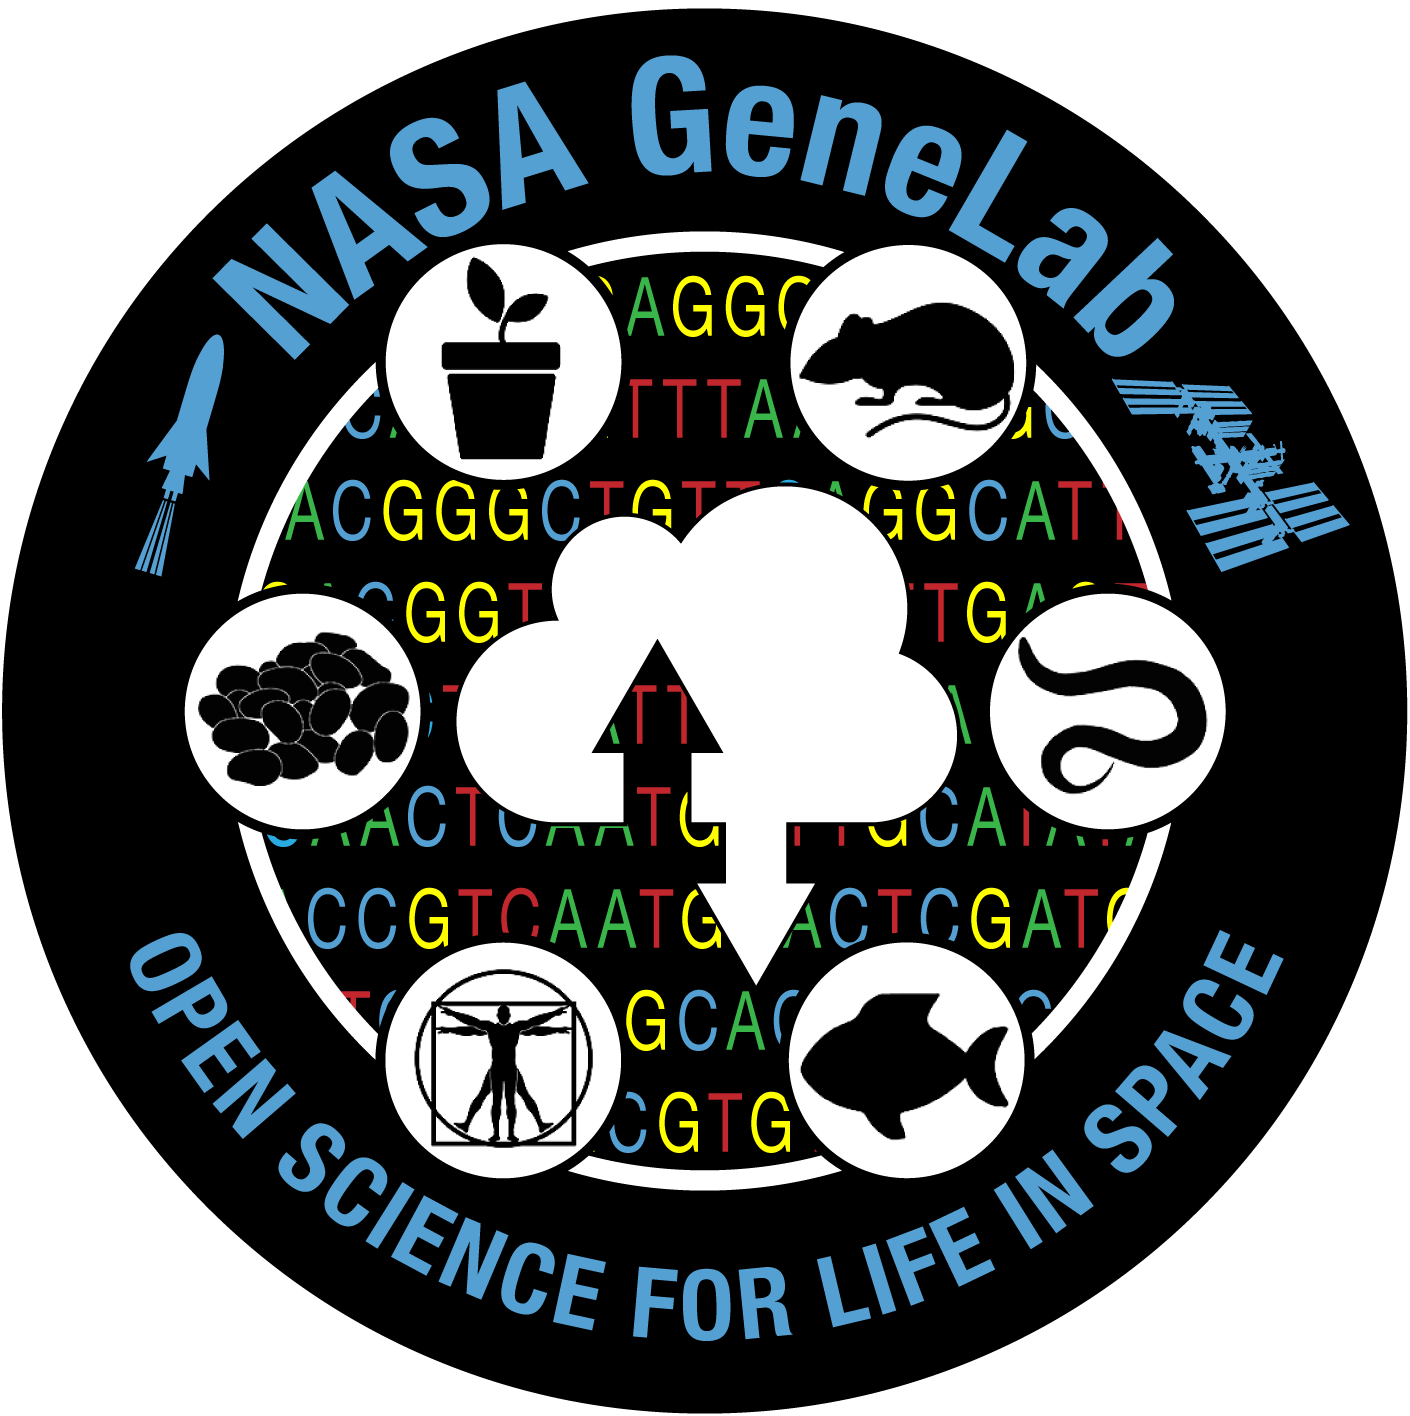 GeneLab: Open Science for Life in Space